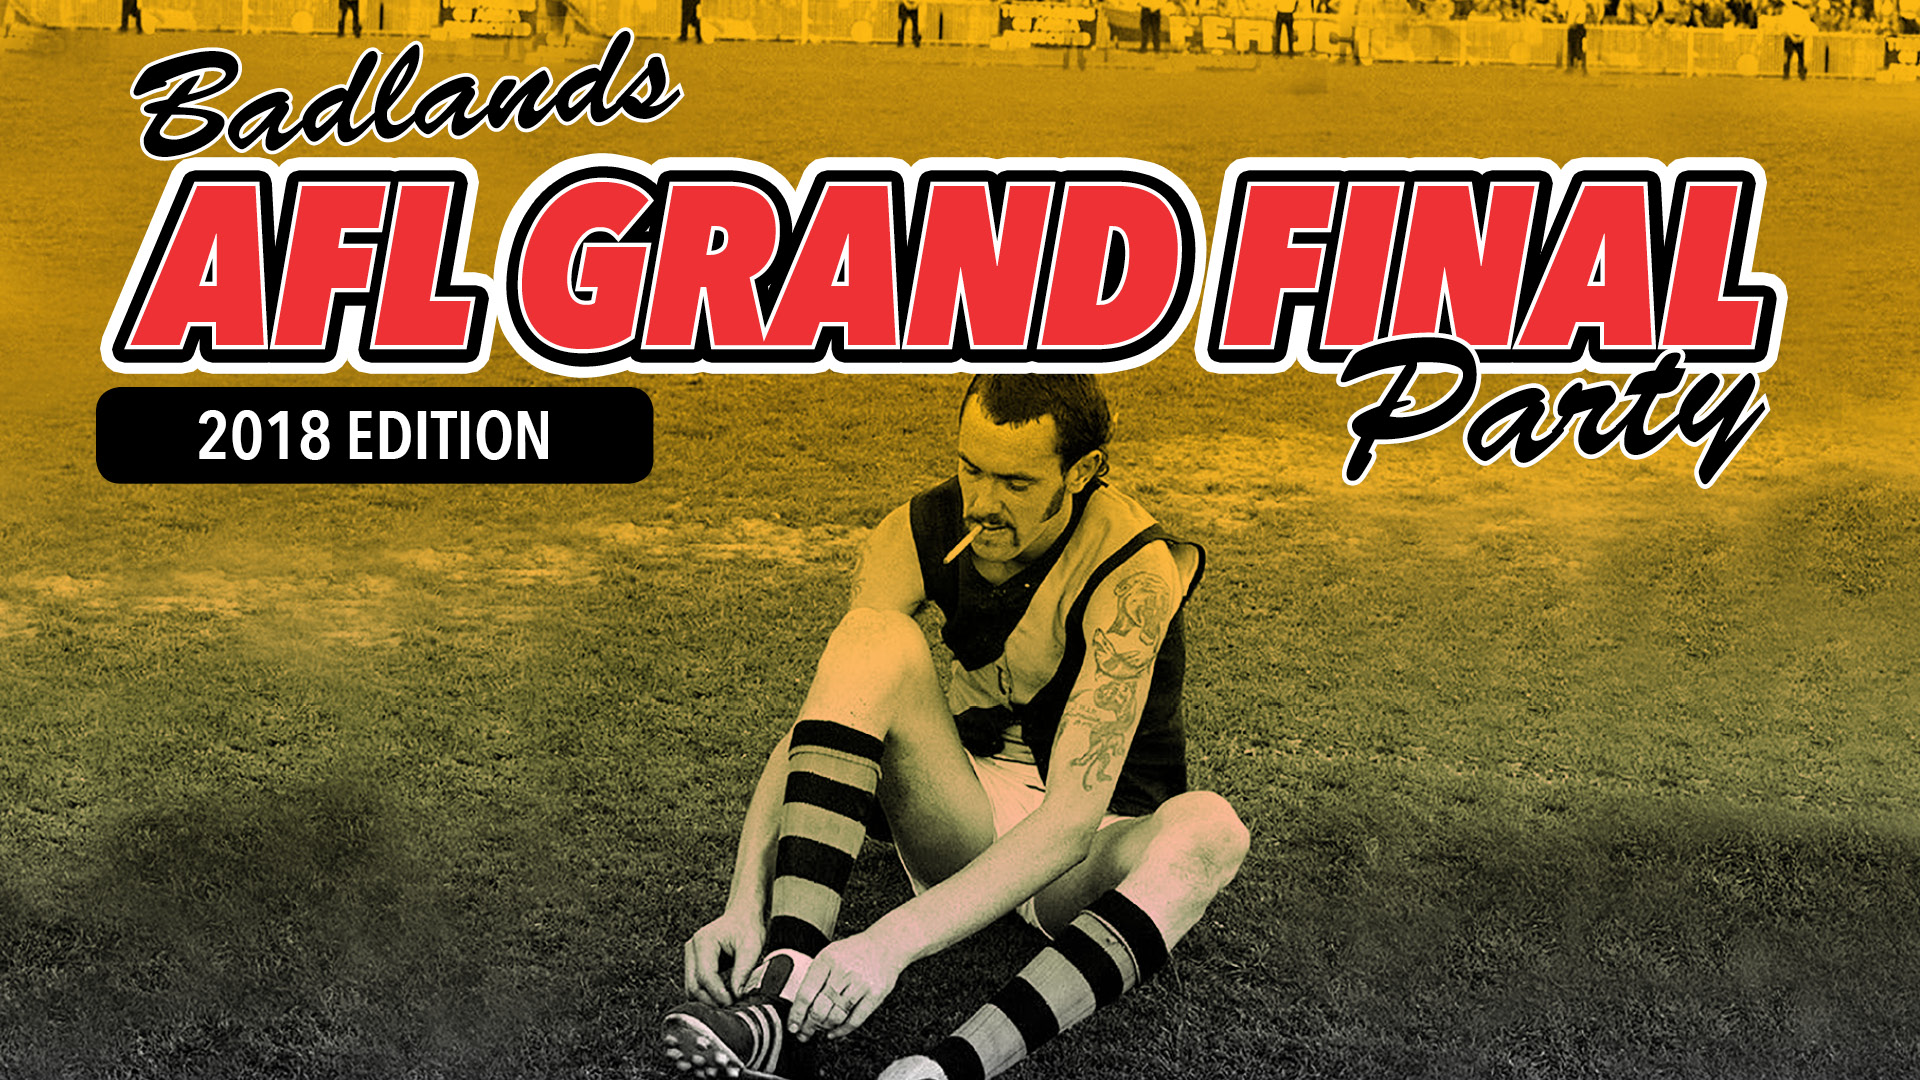 AFL Grand Final on the Badlands Big Screen feat. The Little Lord Street Band and Pastel Suburbs